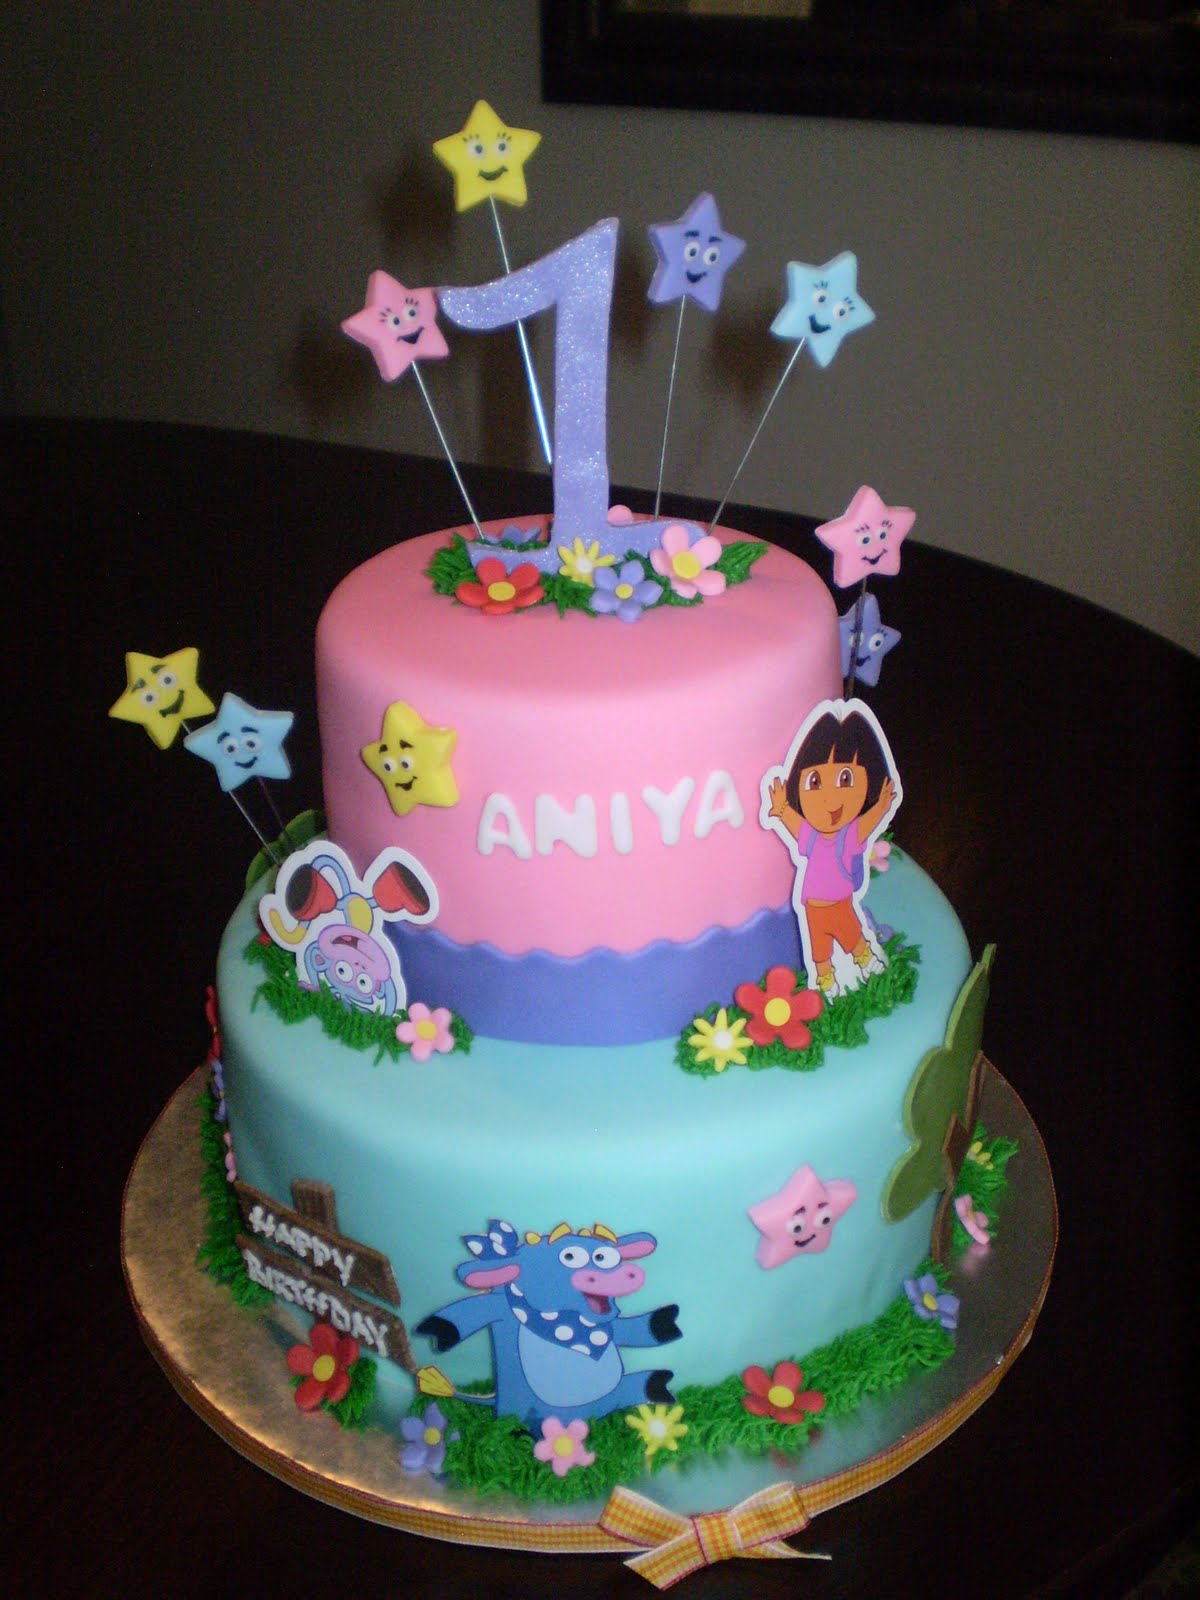 Divine Cakes by Janice: Dora the Explorer Cake